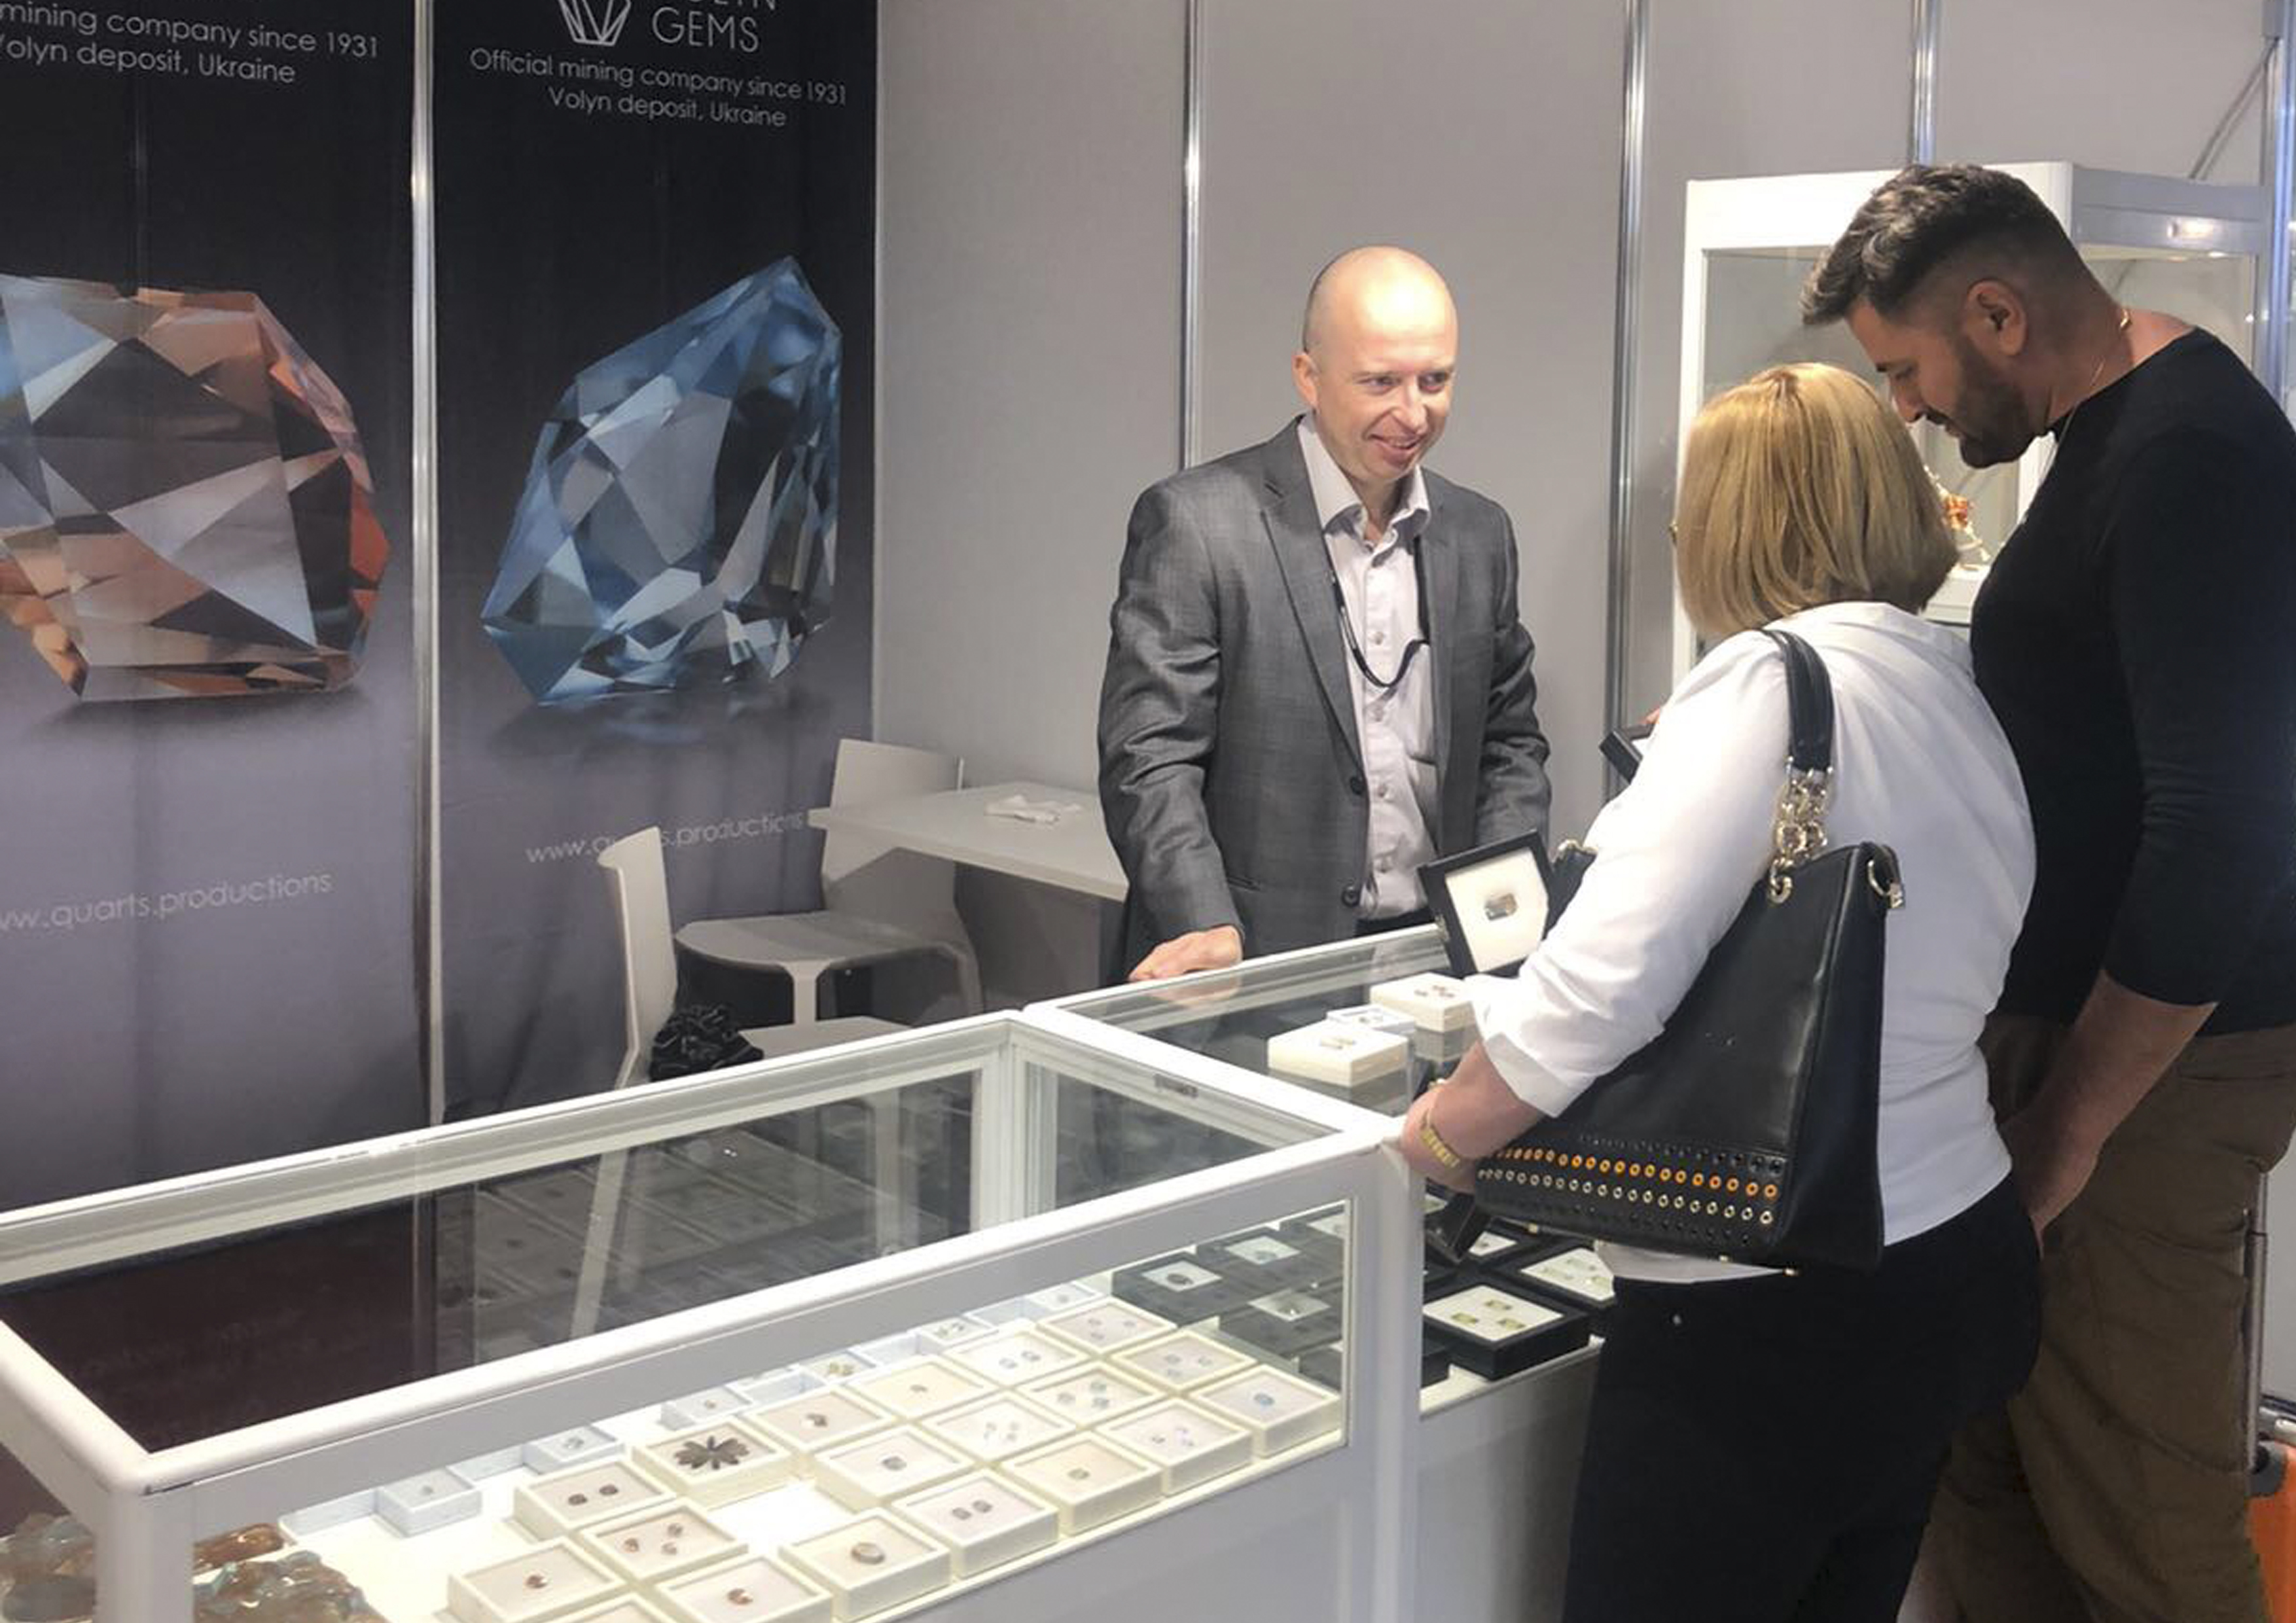 There are some results of the participation in The Munich Show - Mineralientage München